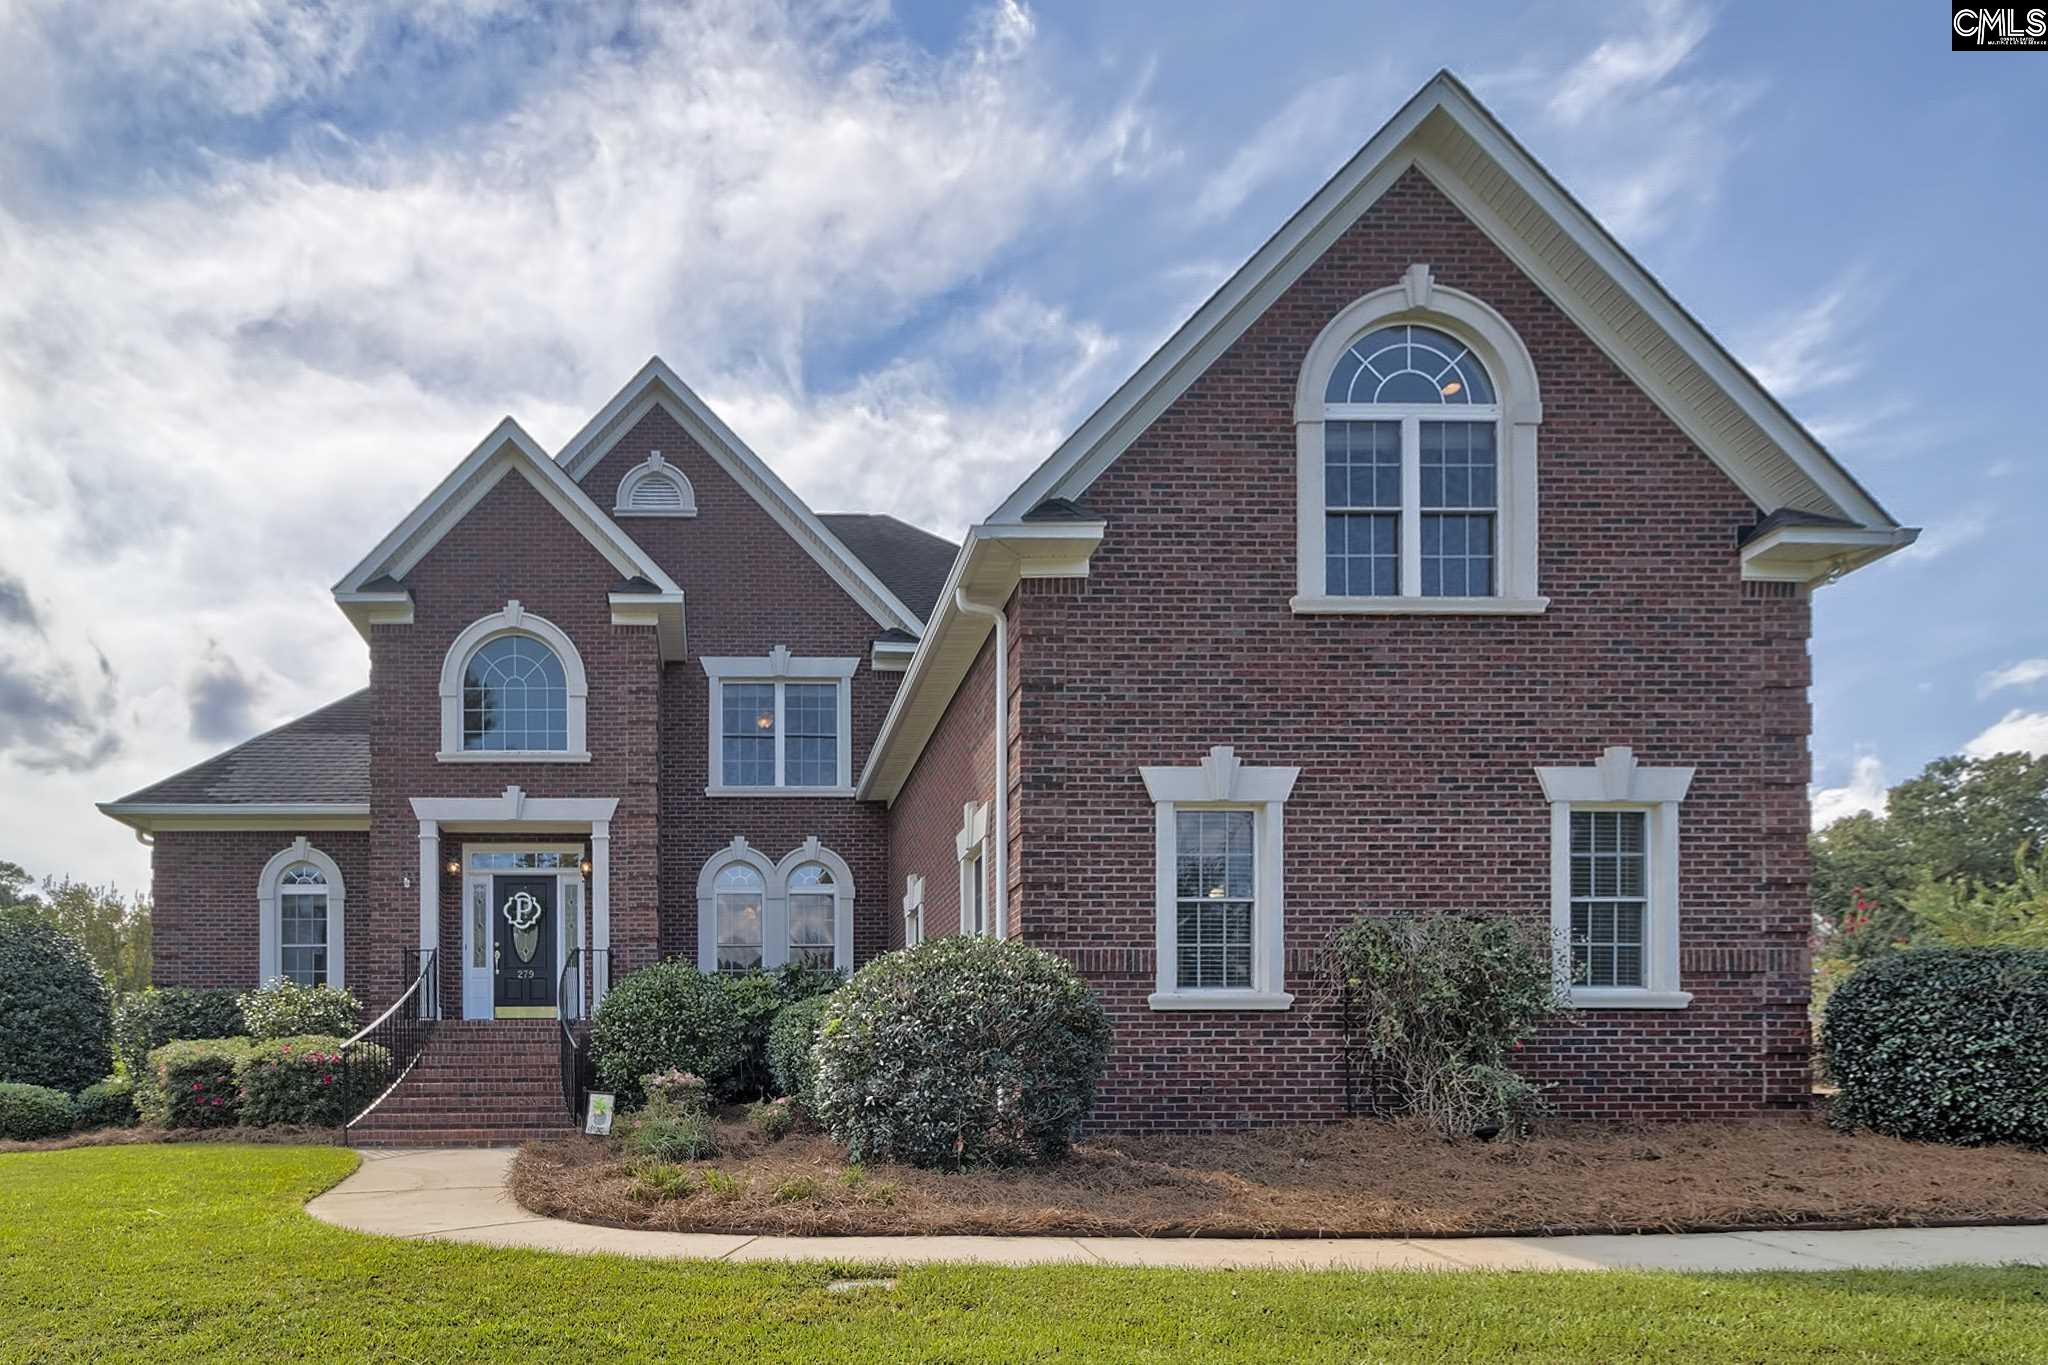 279 Kelsey Glen Lexington, SC 29072-7734